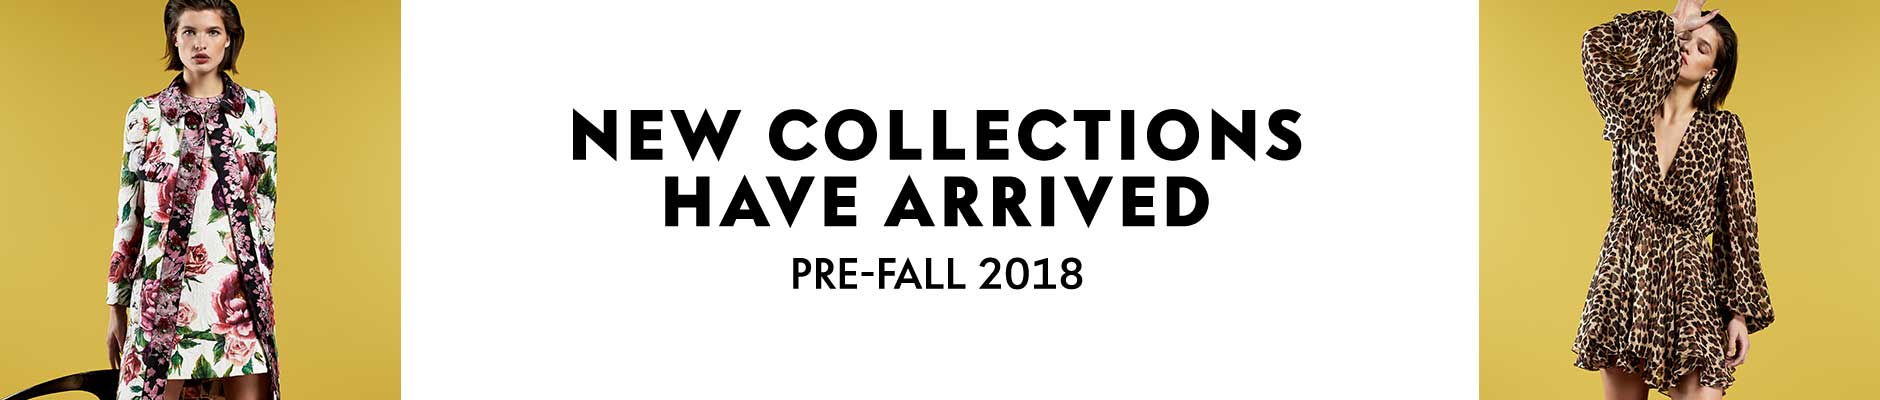 New Collections Have Arrived - Pre-Fall 2018